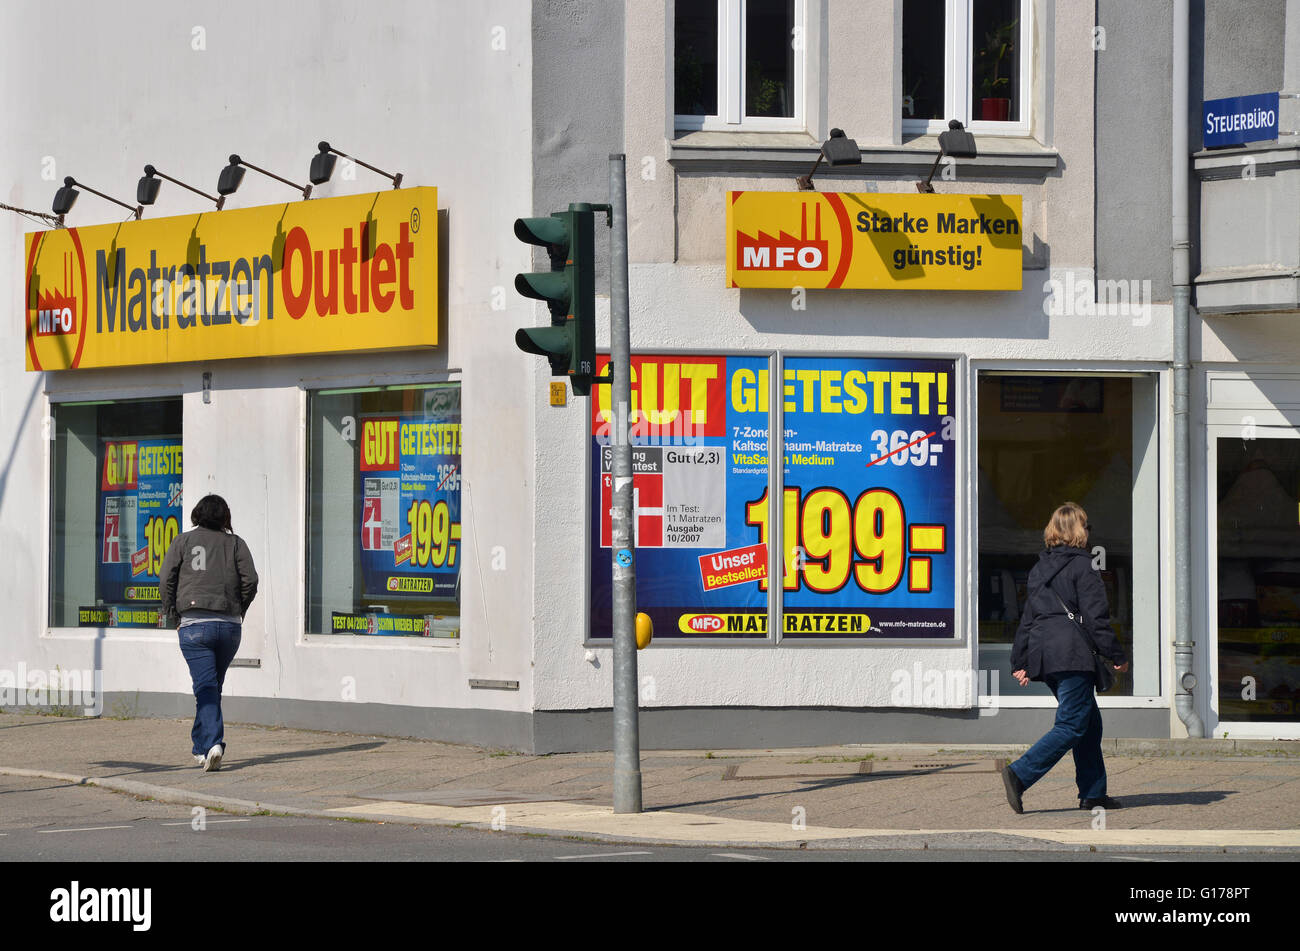 Matratze Berlin Matratzen Outlet Unter Den Eichen Lichterfelde Berlin Stock Photos